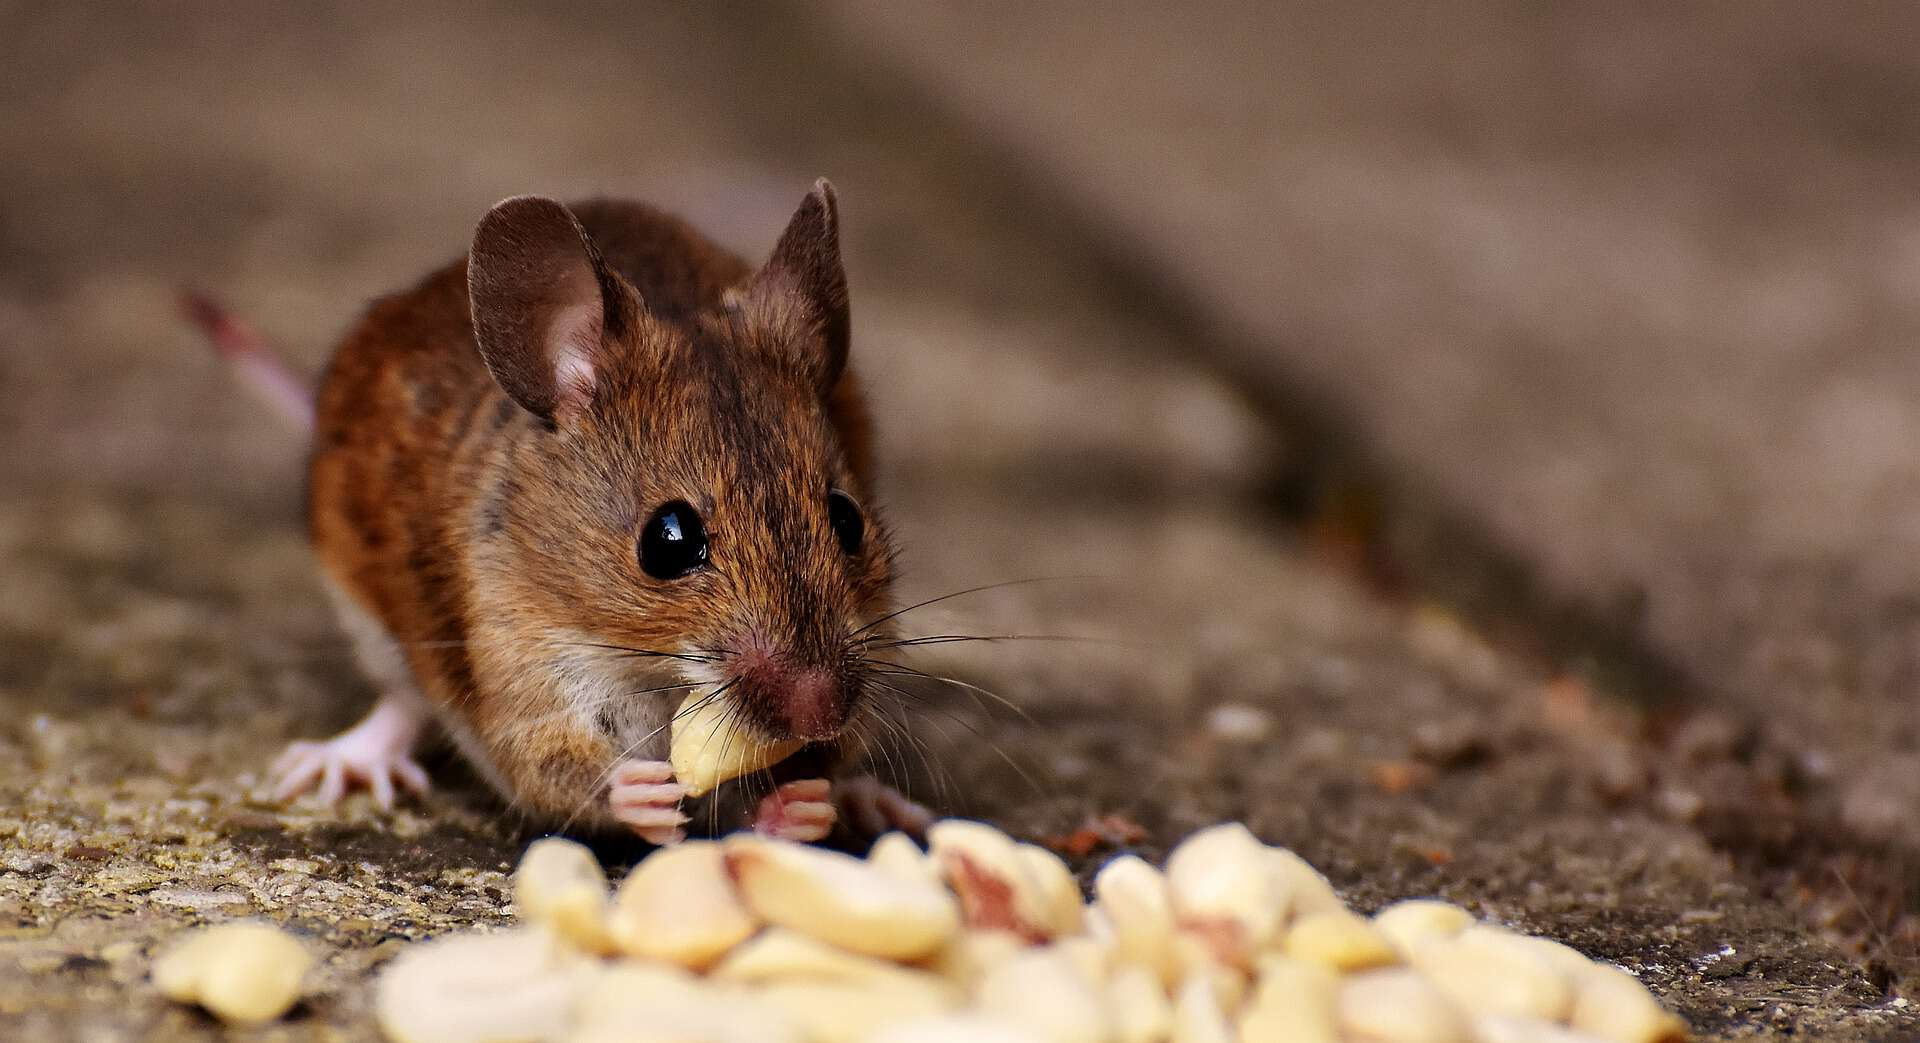 A small mouse eating peanuts